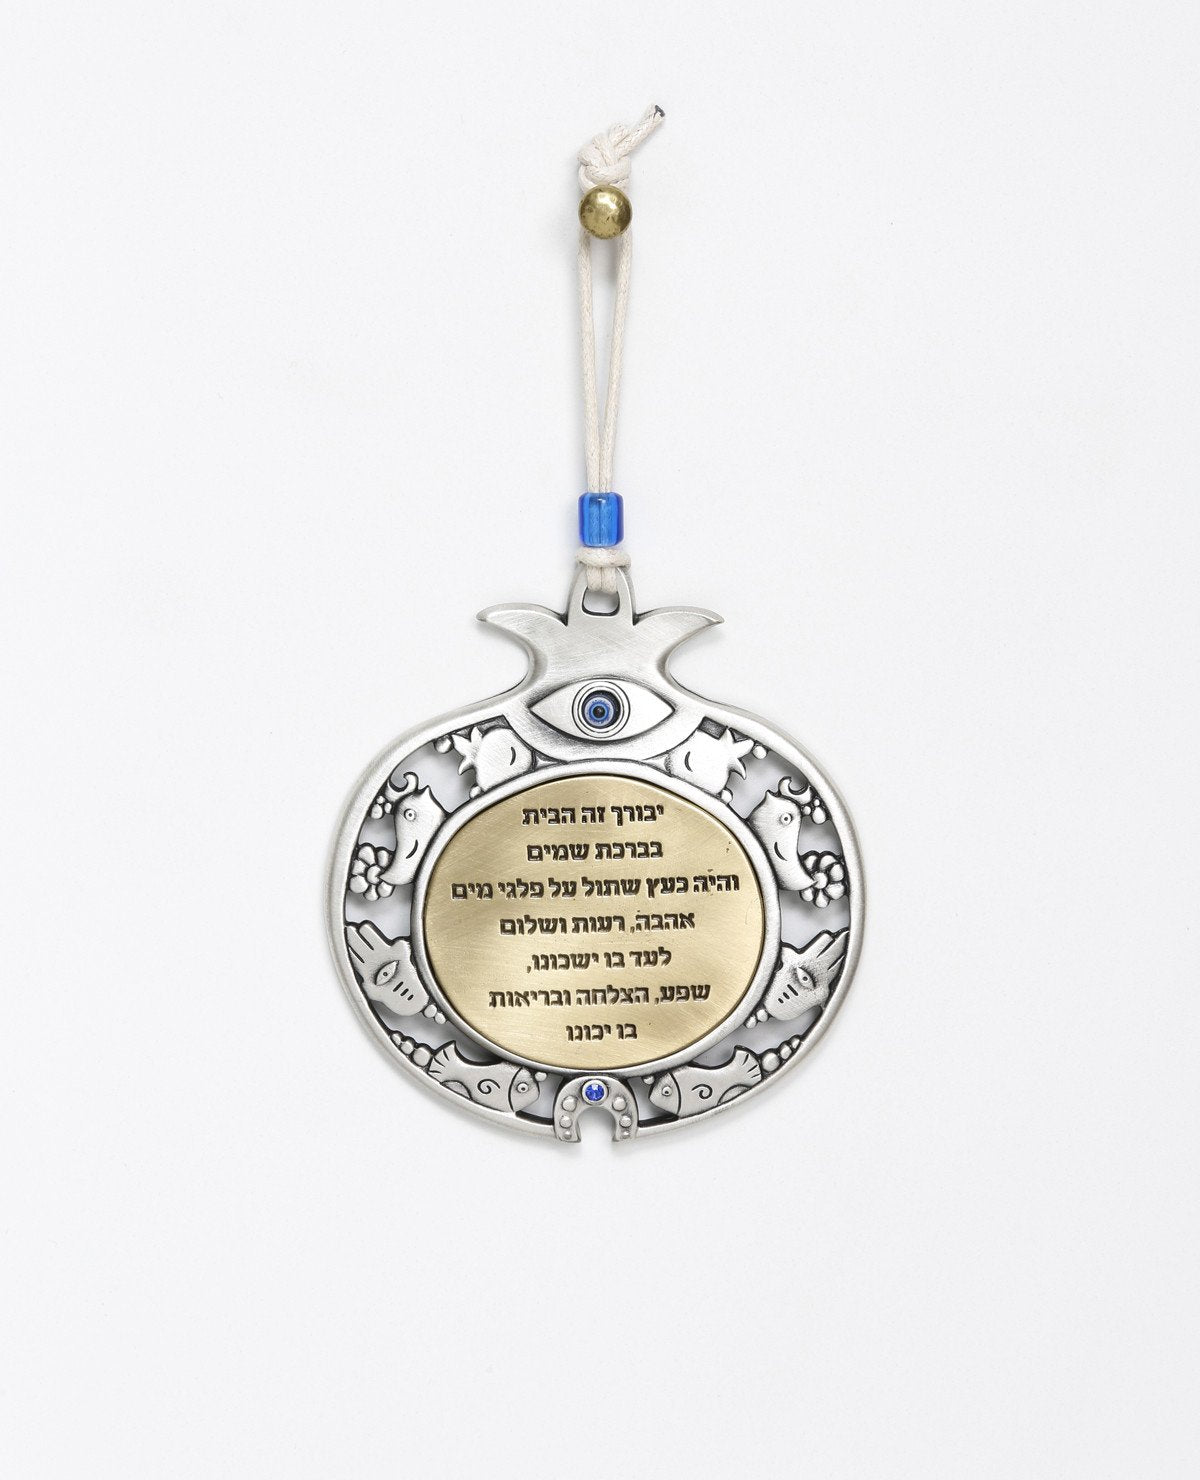 "A unique and excitingly designed Azure pomegranate hanging Home Blessing ornament. The frame of the pomegranate is coated in sterling silver and decorated by motifs from the world of good luck charms: a fish, a bird, a pomegranate, a Hamsa and a horseshoe. The inner part of the pomegranate is in the form of a brass plate, upon which the following quote from the book of Tehillim is engraved: ""He will be like a tree planted by the streams of water"". The pomegranate bears the blue eye stone on its crown to sym"